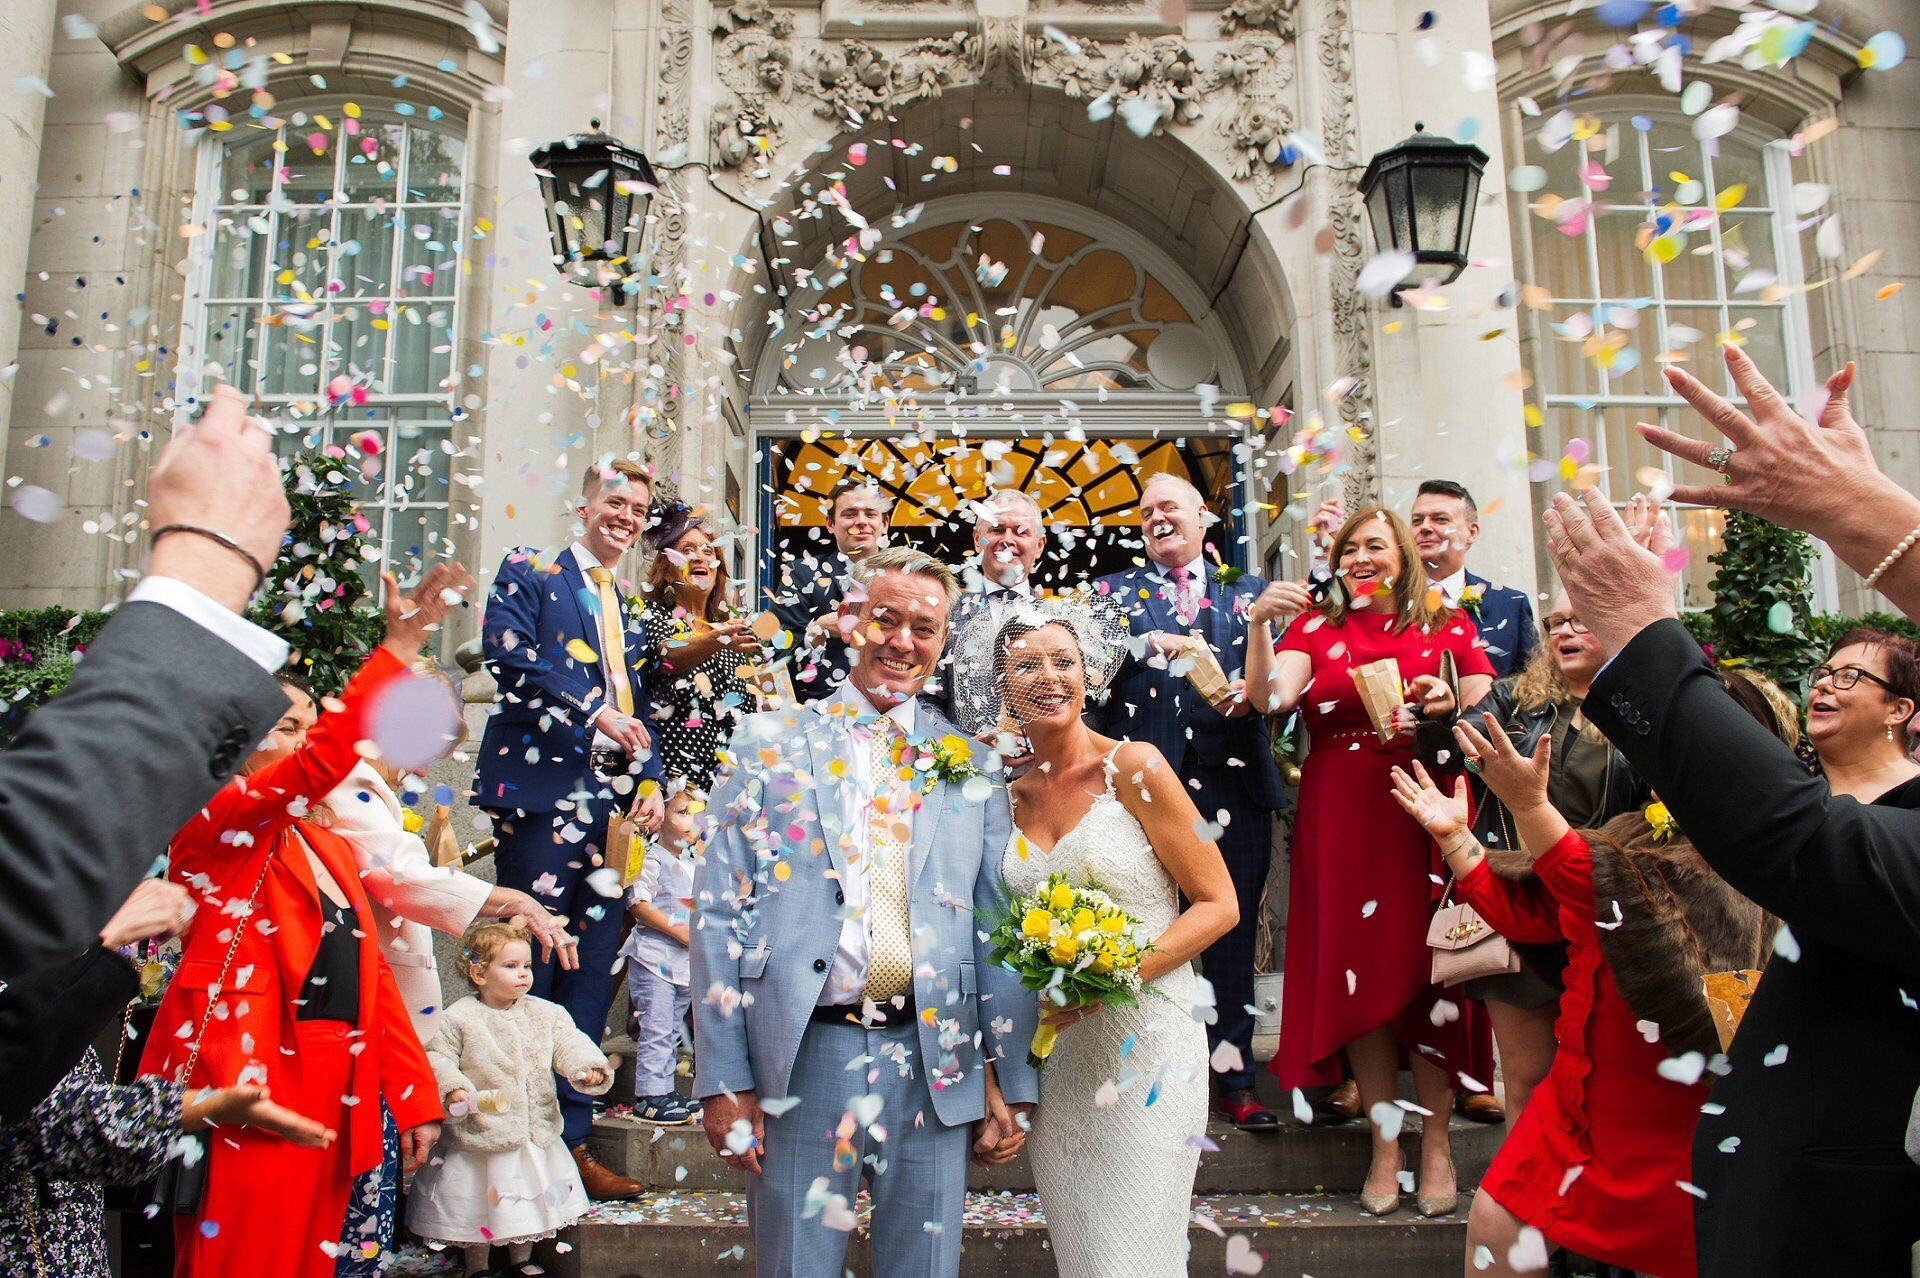 Ivy Chelsea Garden wedding photographer and confetti on the famous Chelsea Old Town Hall steps (Emma Duggan Photography)